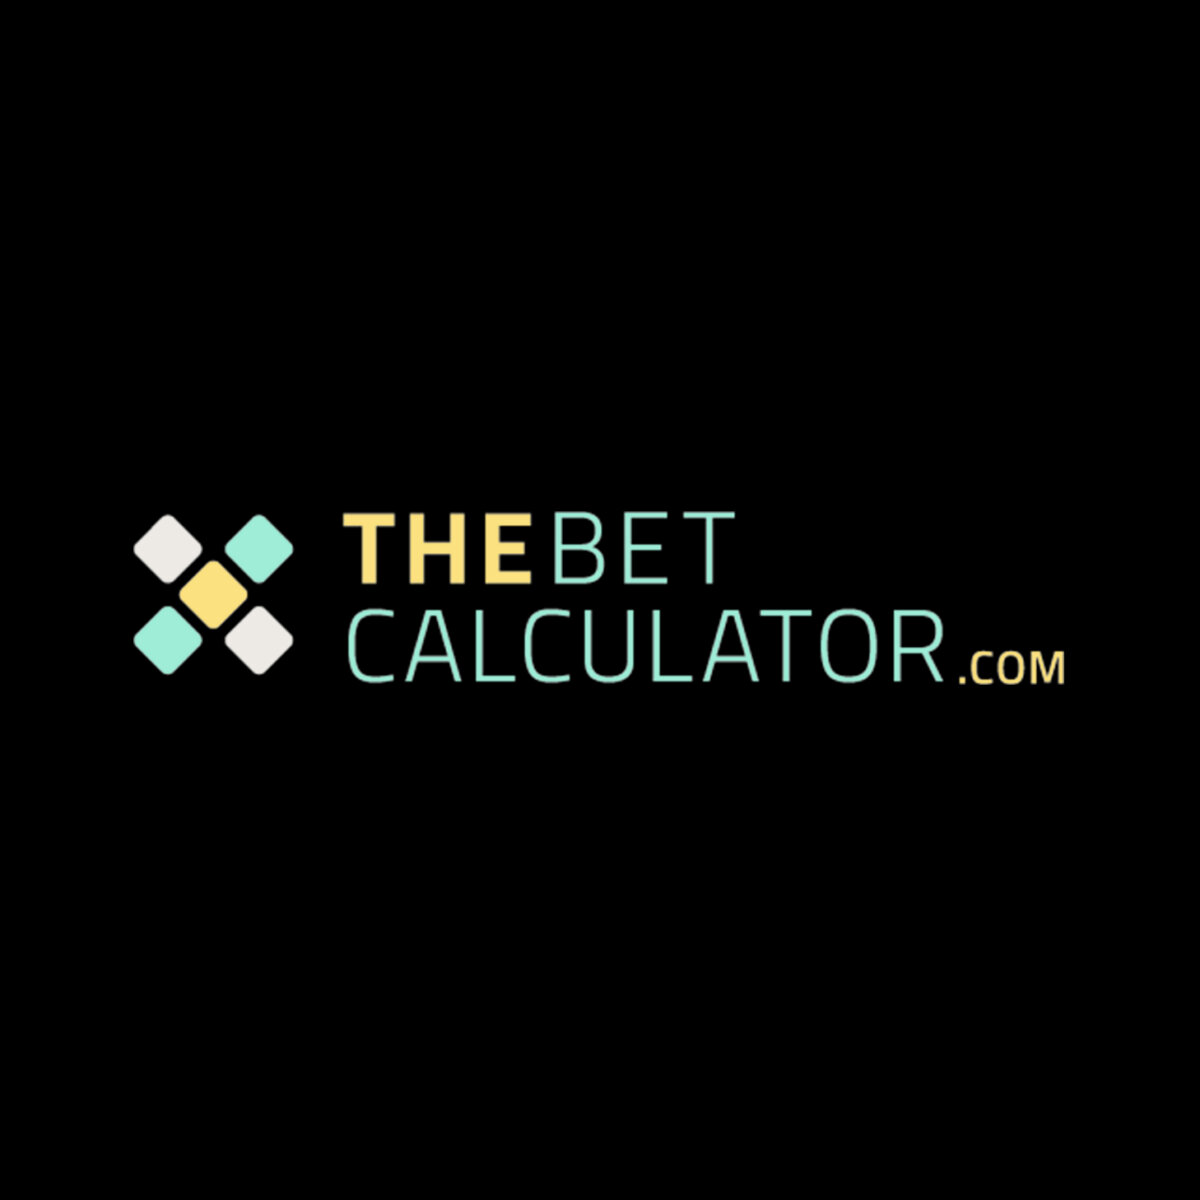 the bet calculator